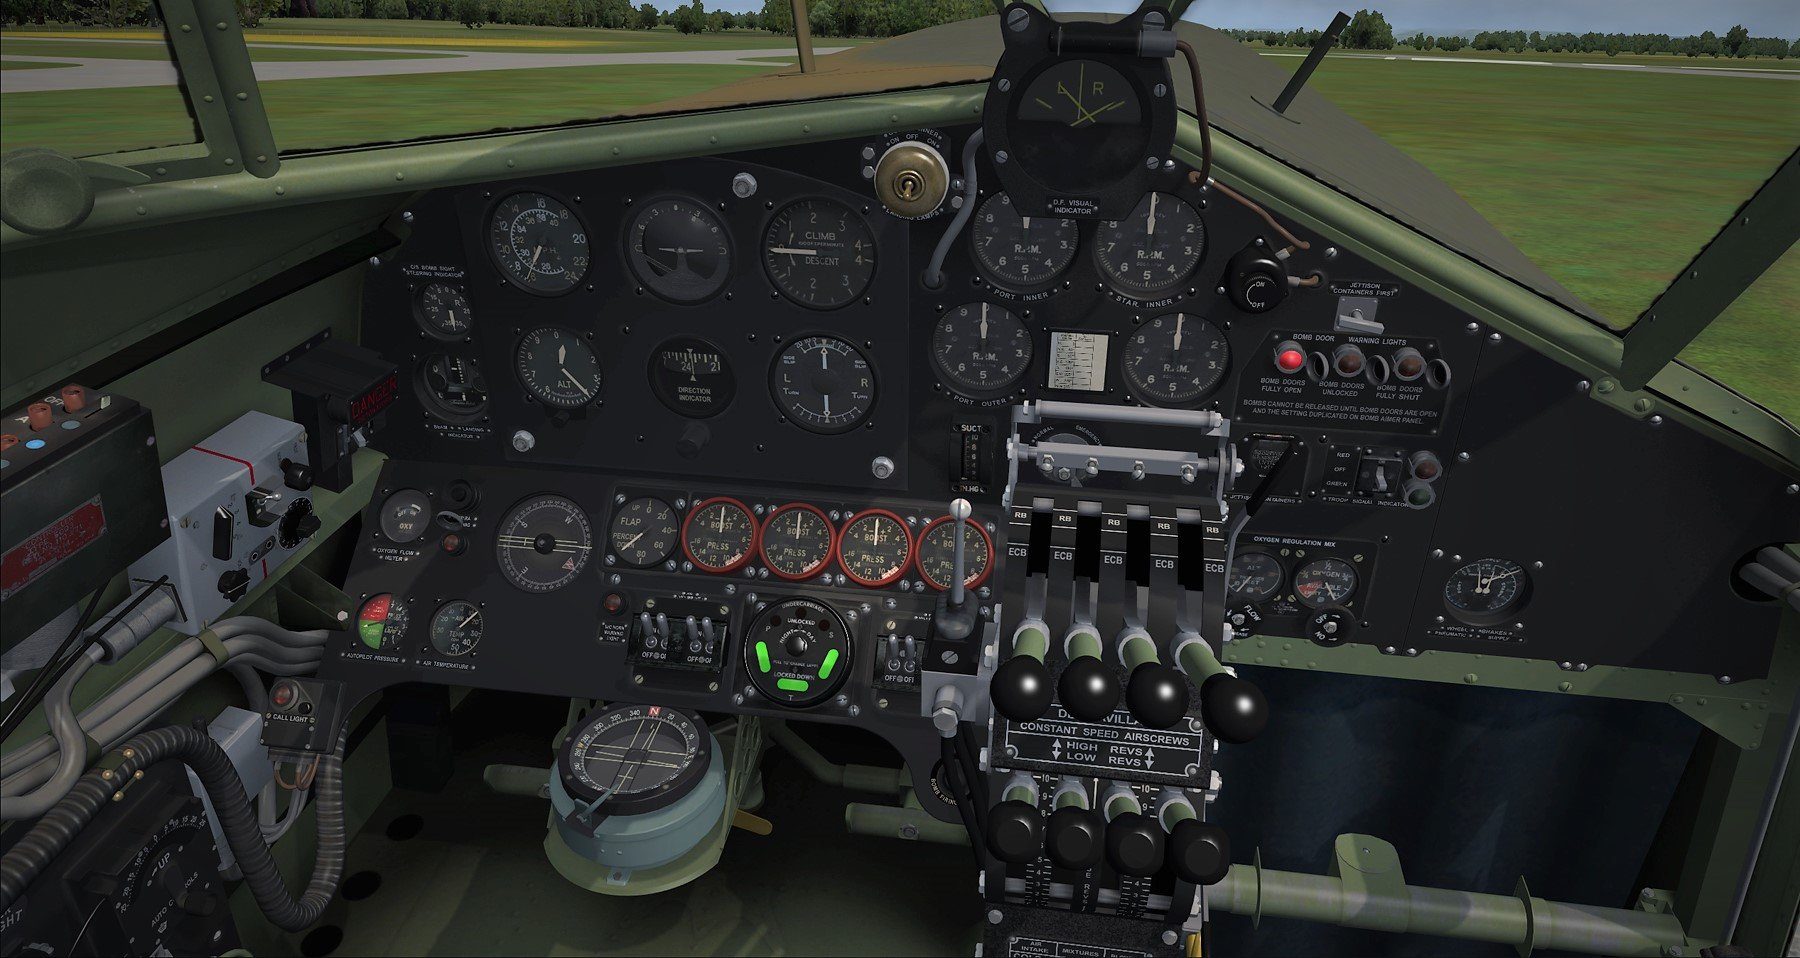 FLIGHT REPLICAS - HALIFAX 哈利法克斯 重型轰炸机 FSX P3D